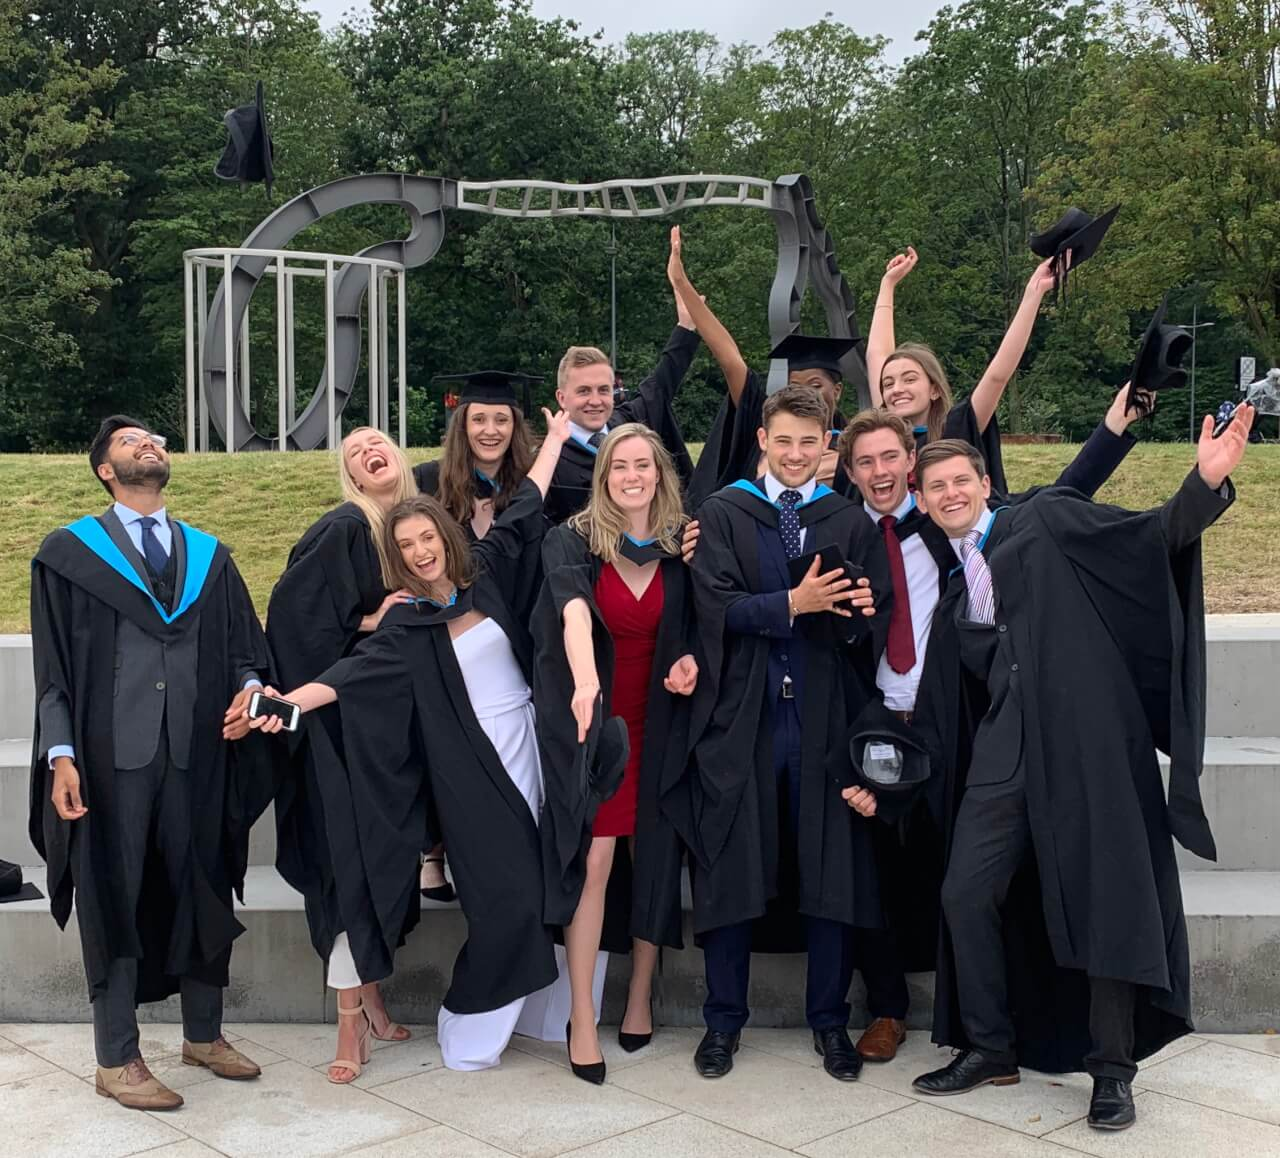 Graduation aka my last day at Warwick & last blog post